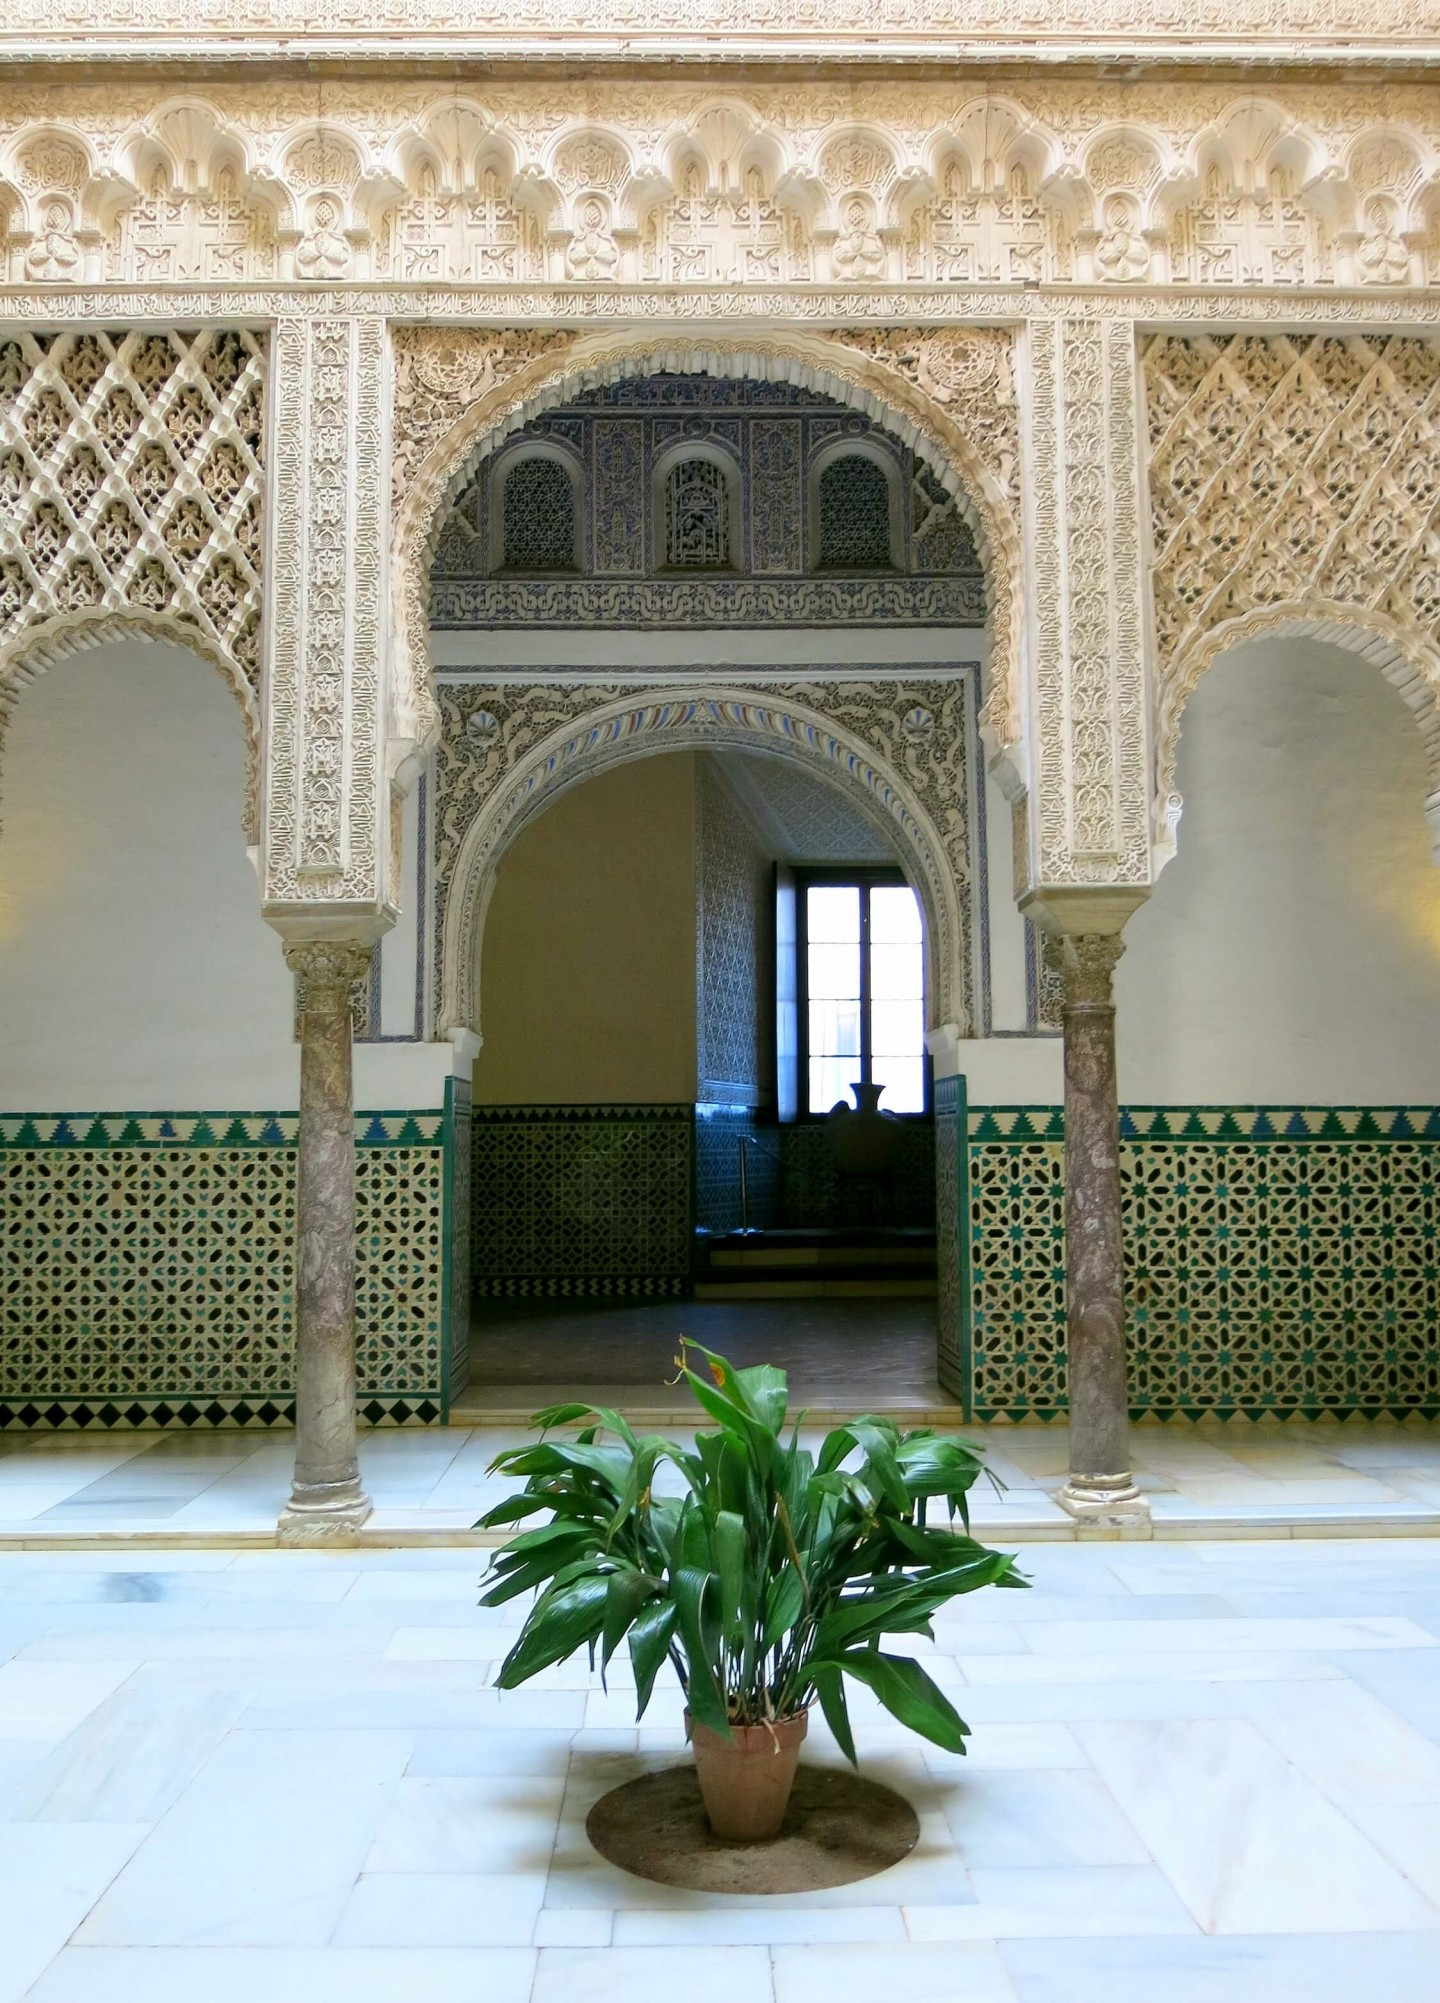 The Real Alcázar in Seville, Spain, is not to be missed on your visit to this European city. It is stunning and was used in the filming of Game of Thrones! This should be top of your list when travelling to Seville.